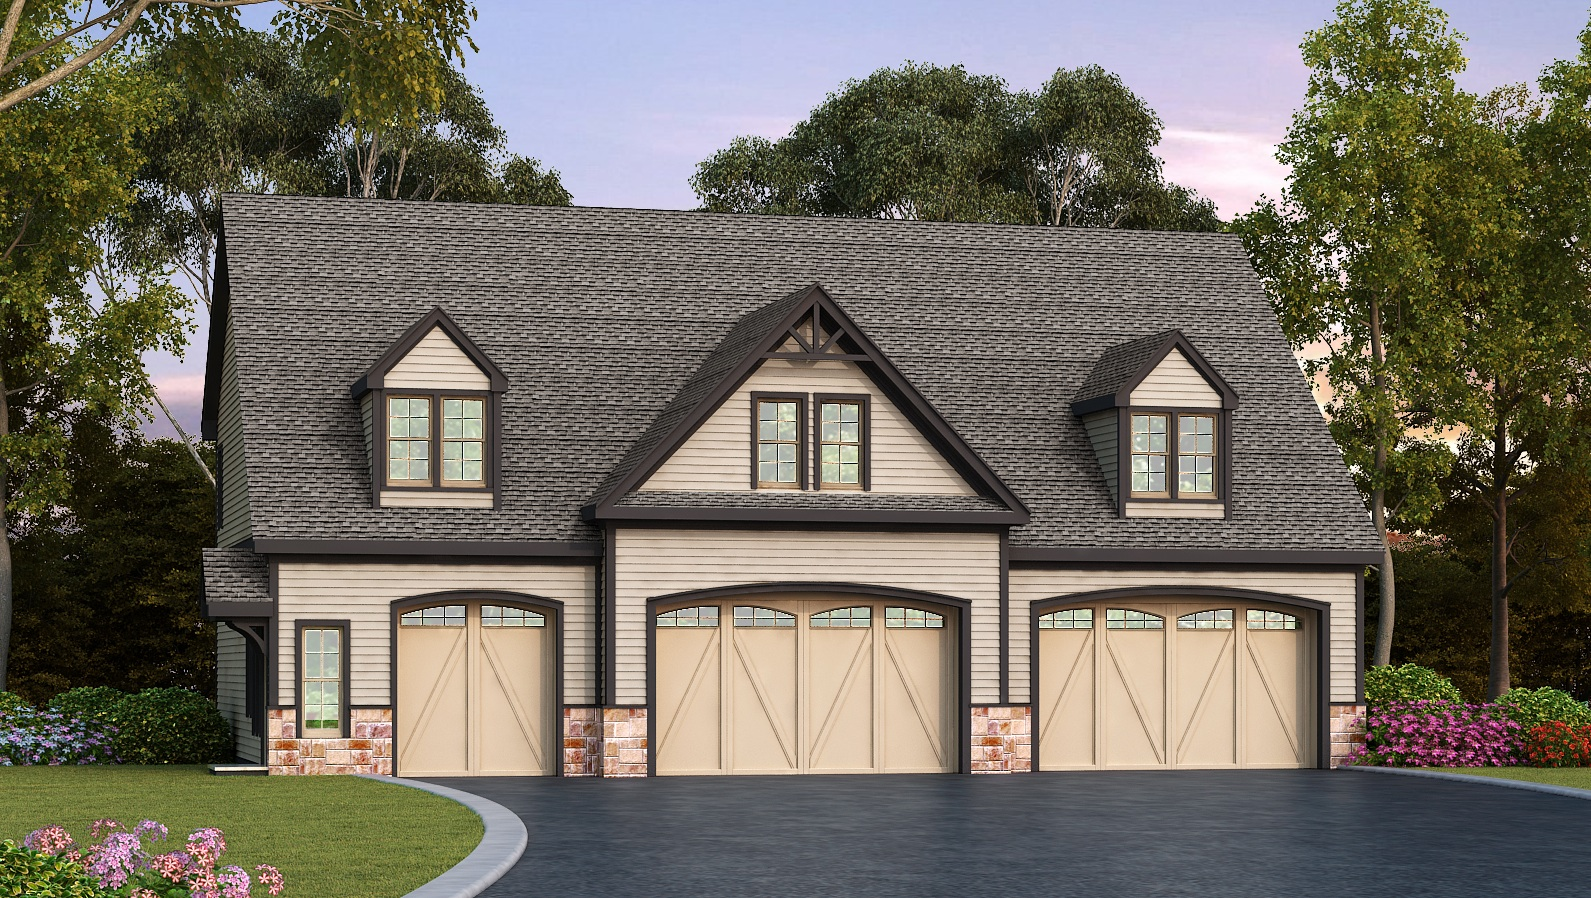 Residential 5 car garage plan 29870rl 2nd floor master for 2 5 car garage